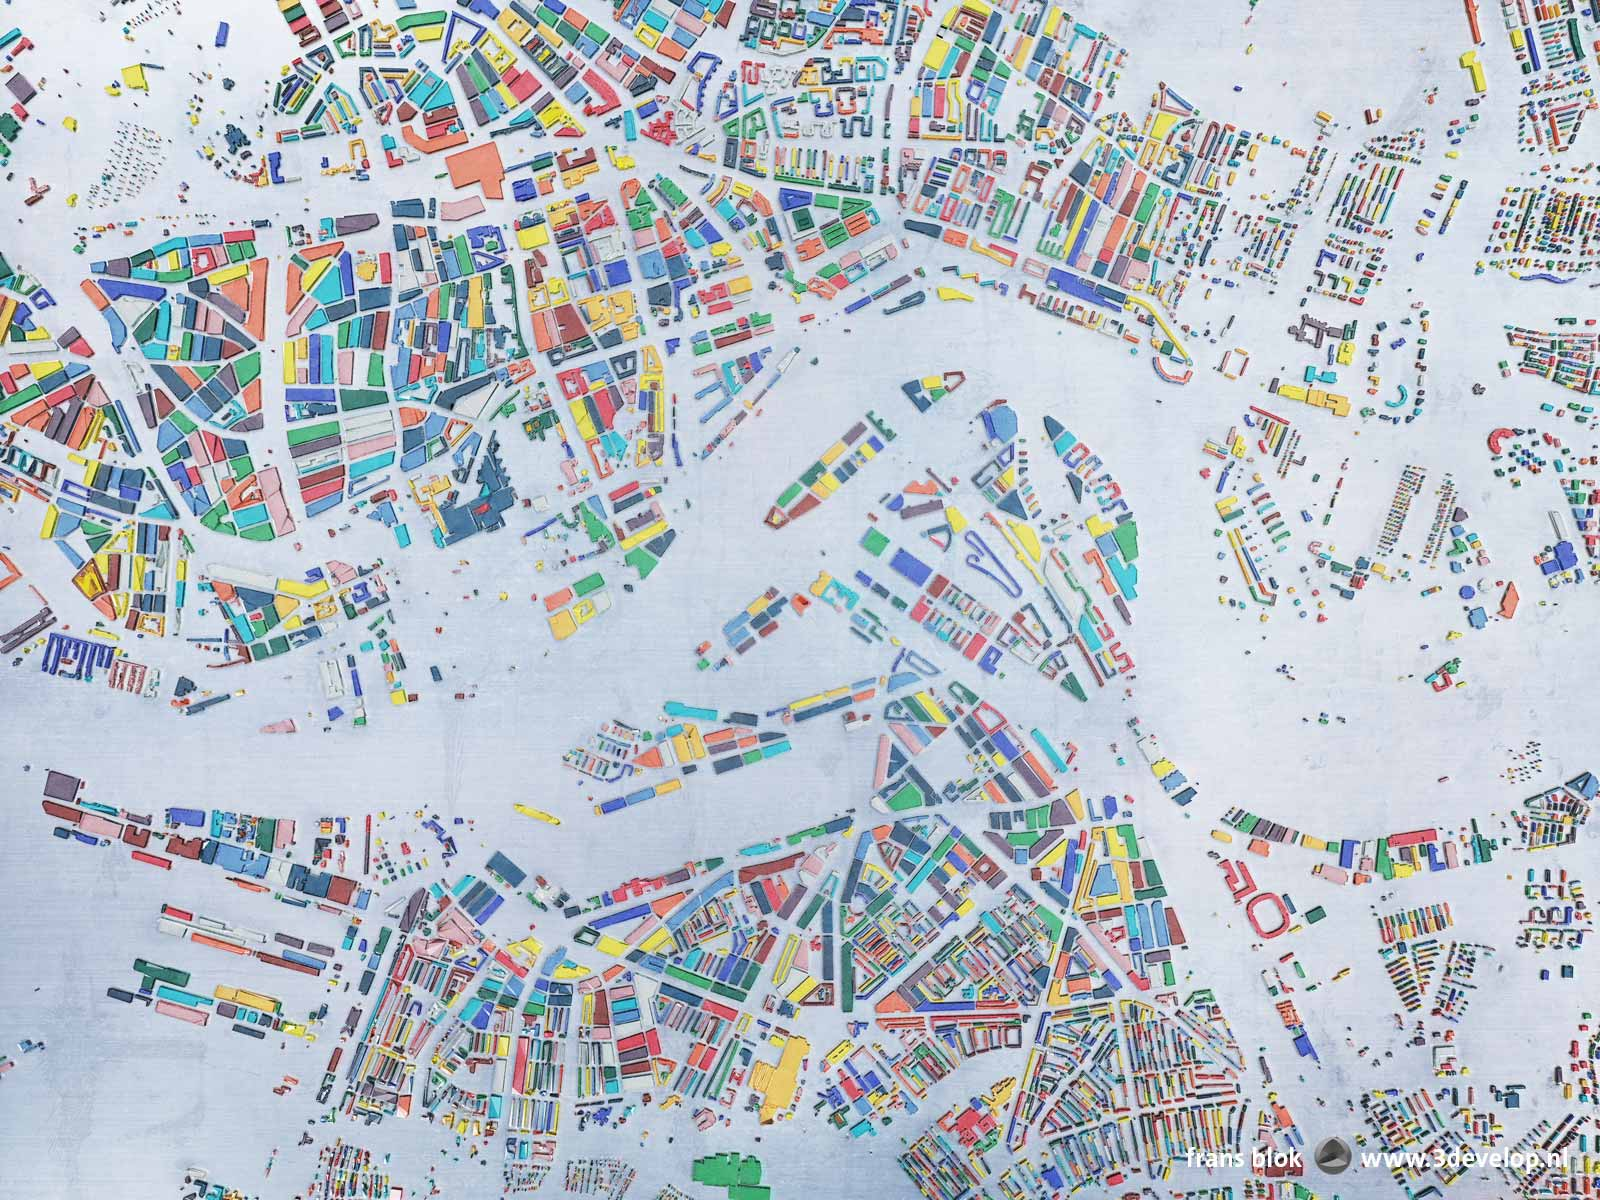 Map of Rotterdam inside the ringroad, with the city blocks done as glass in 15 different colors